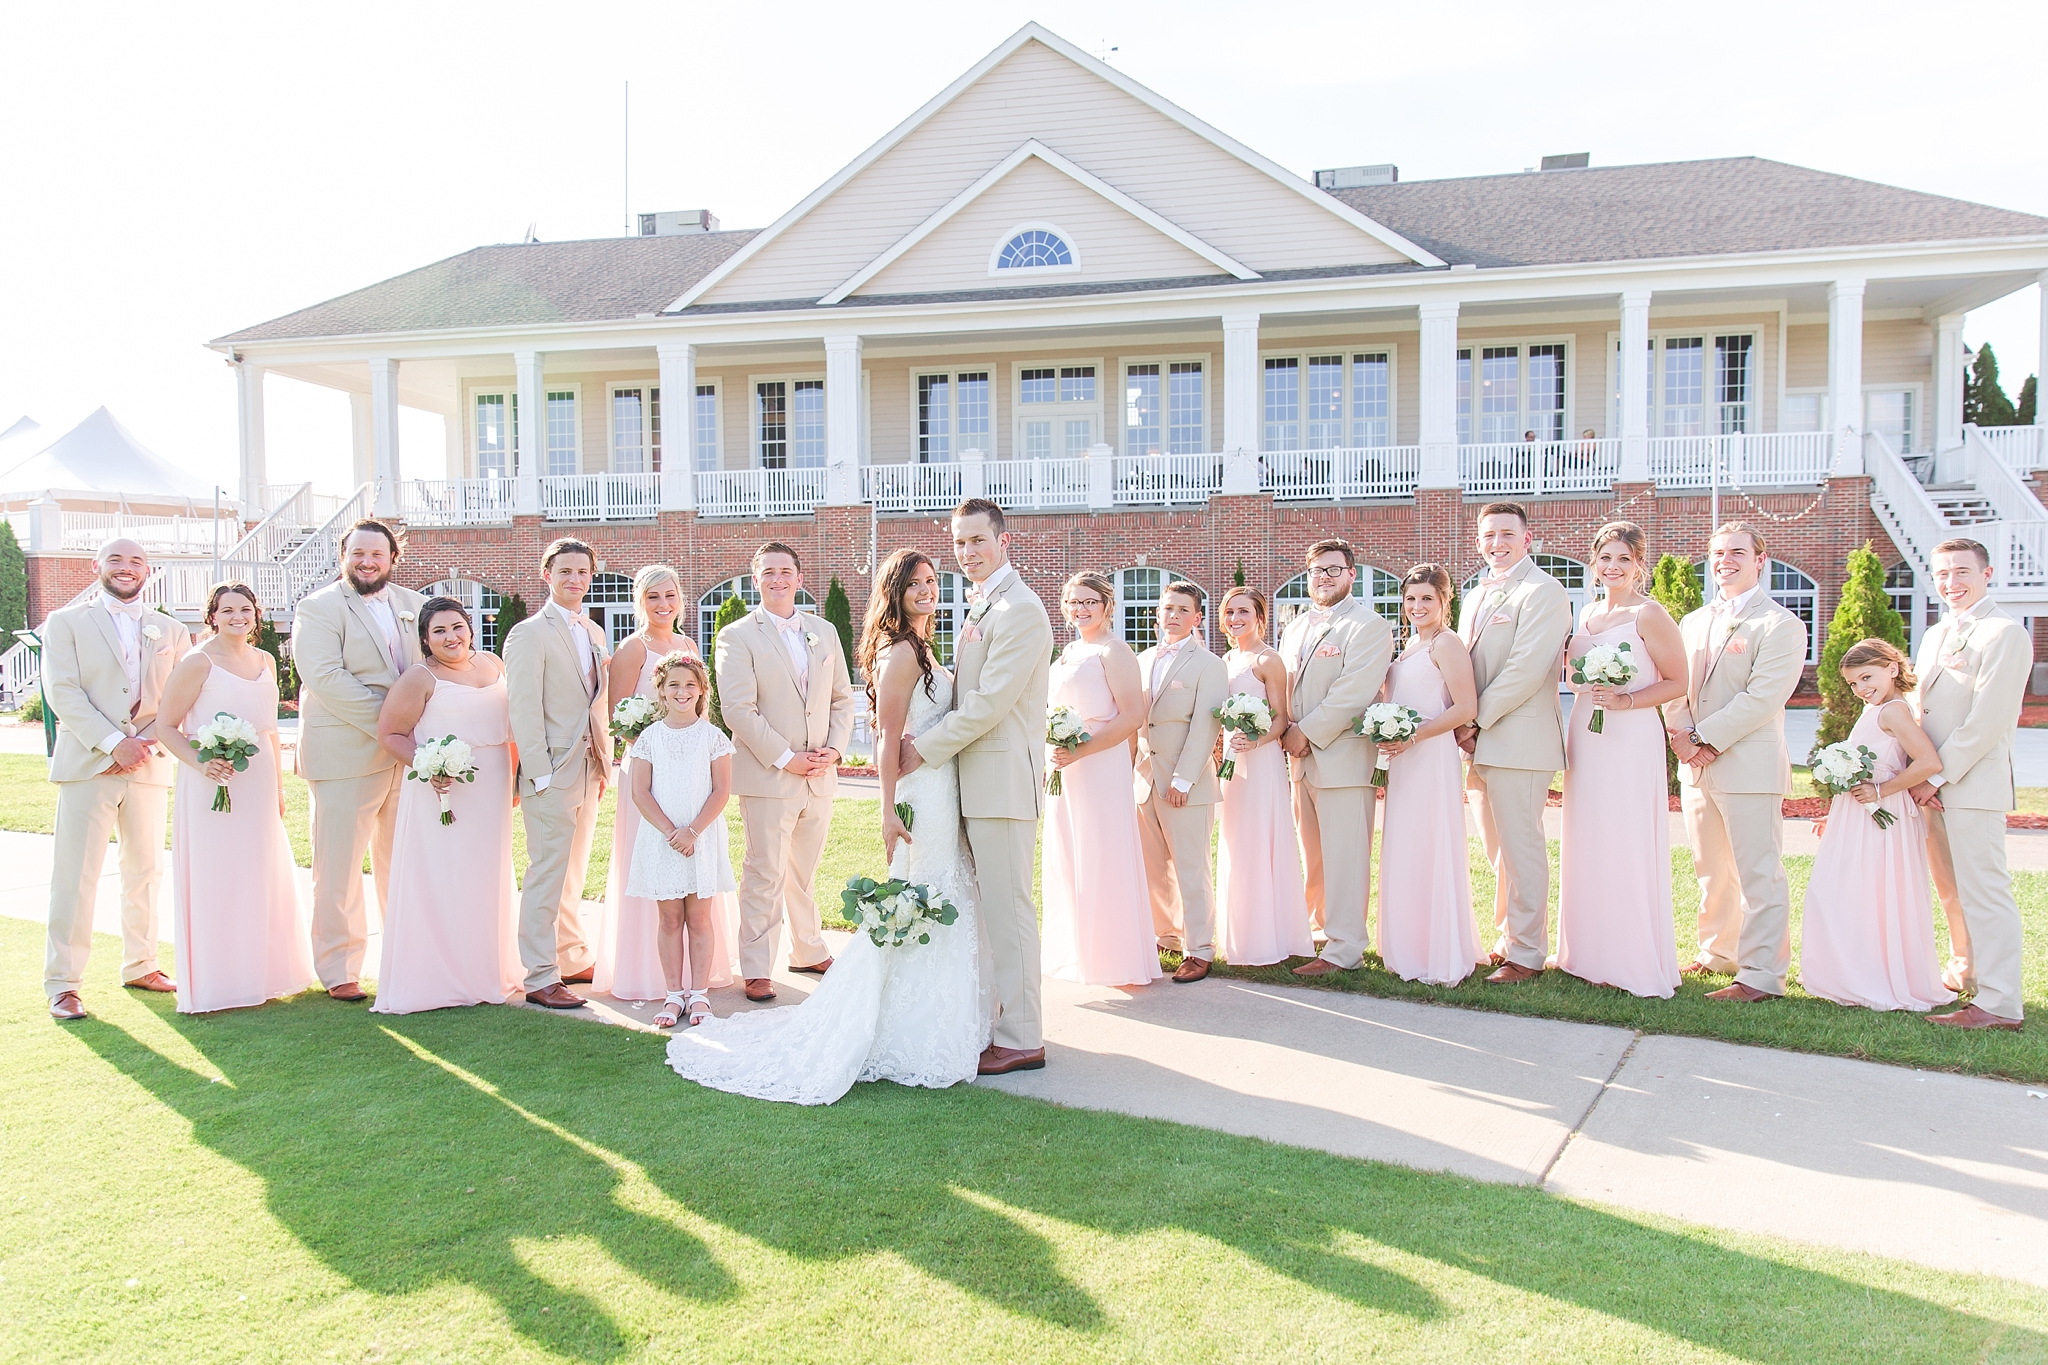 candid-timeless-wedding-photos-at-the-captains-club-in-grand-blanc-michigan-by-courtney-carolyn-photography_0055.jpg